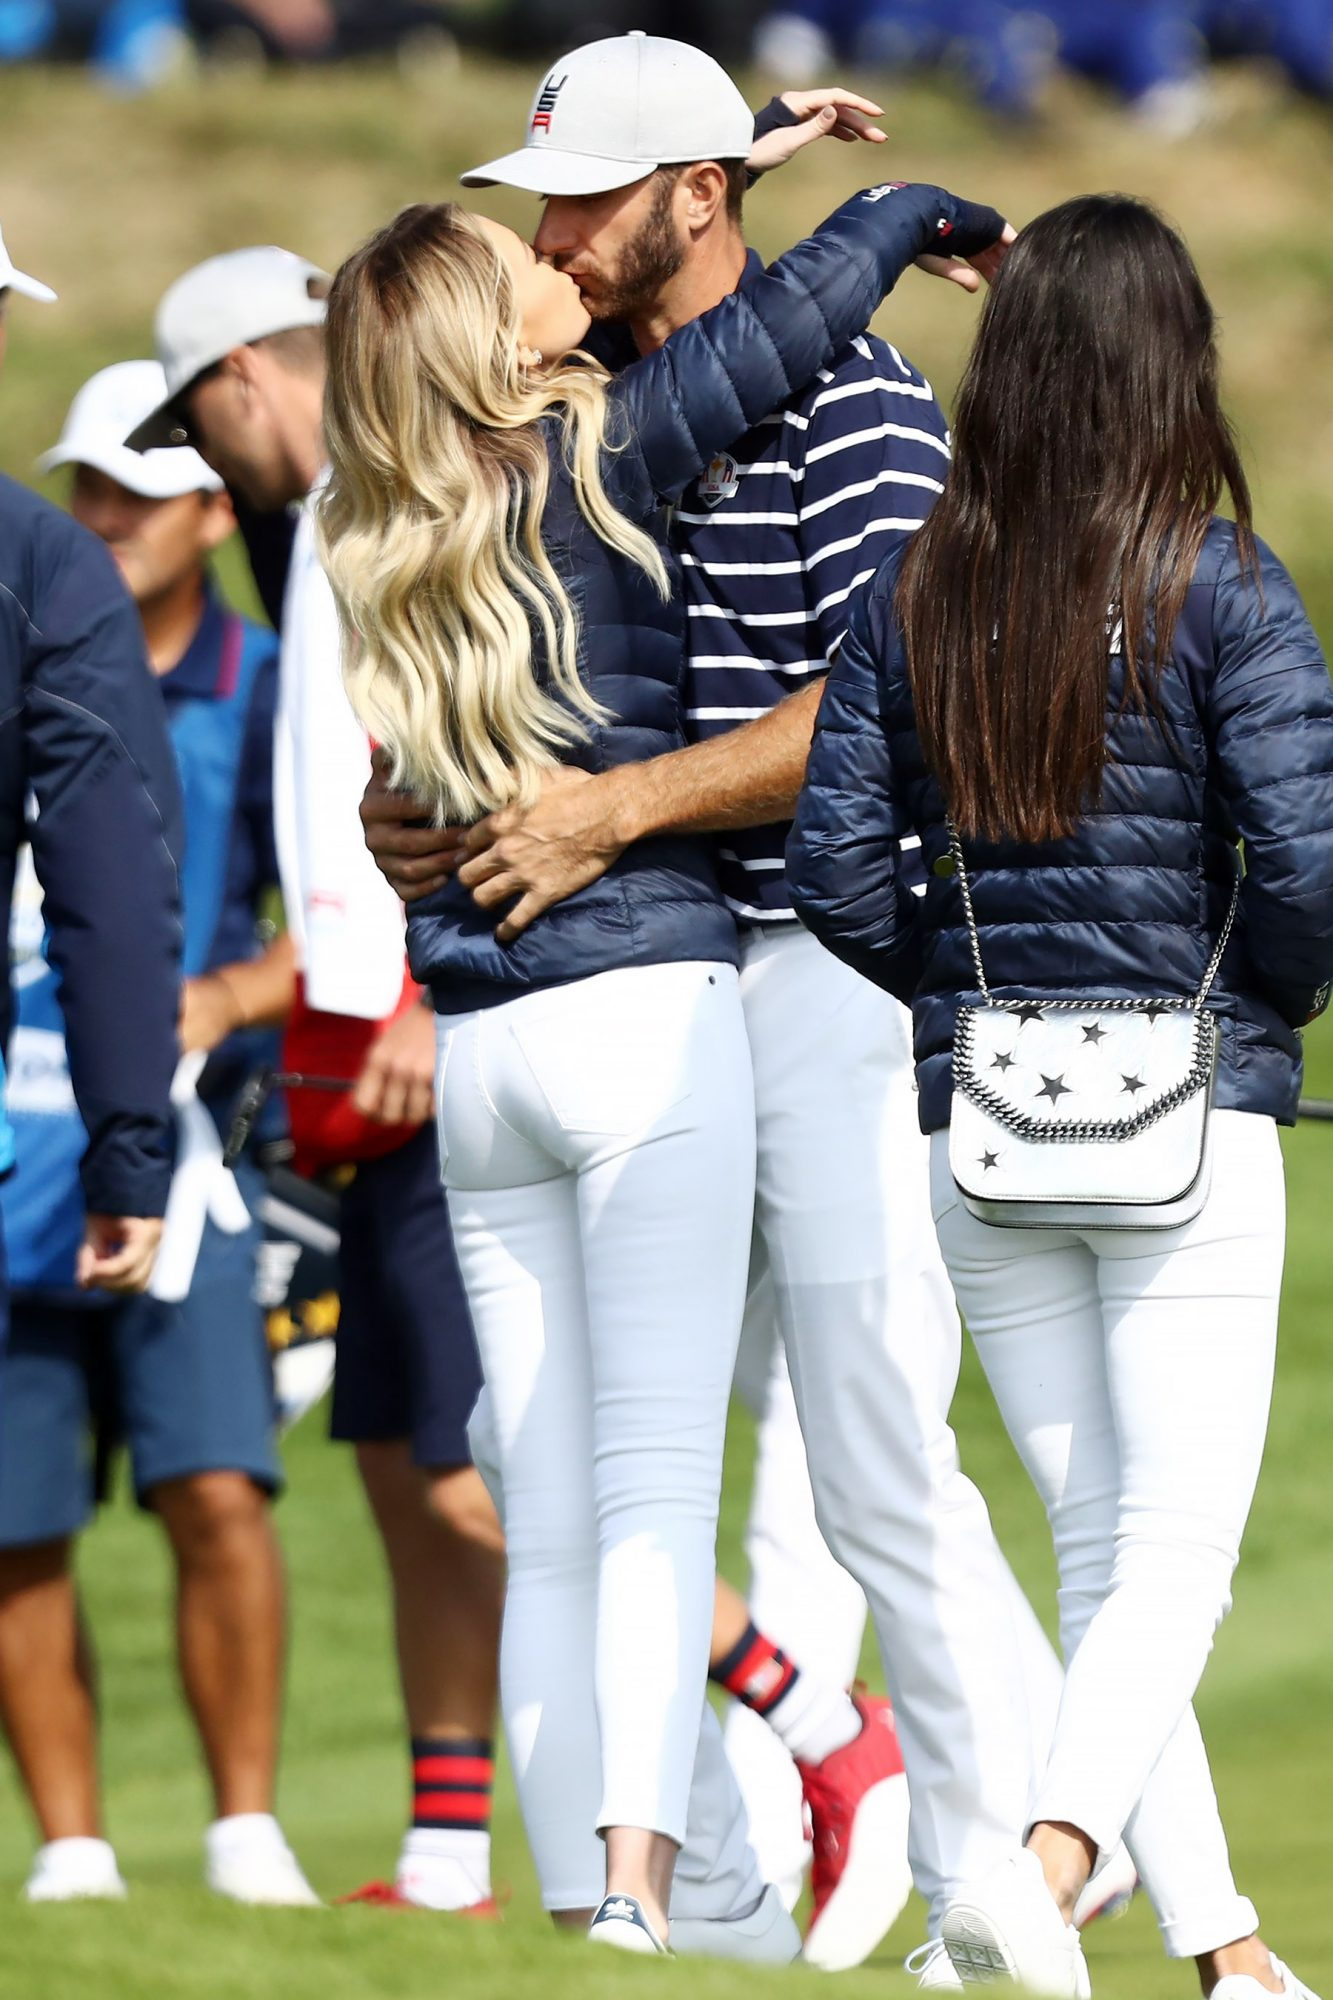 Ryder Cup 2018, Day One, Morning Fourballs, Golf, Le Golf National, Paris, France - 28 Sep 2018